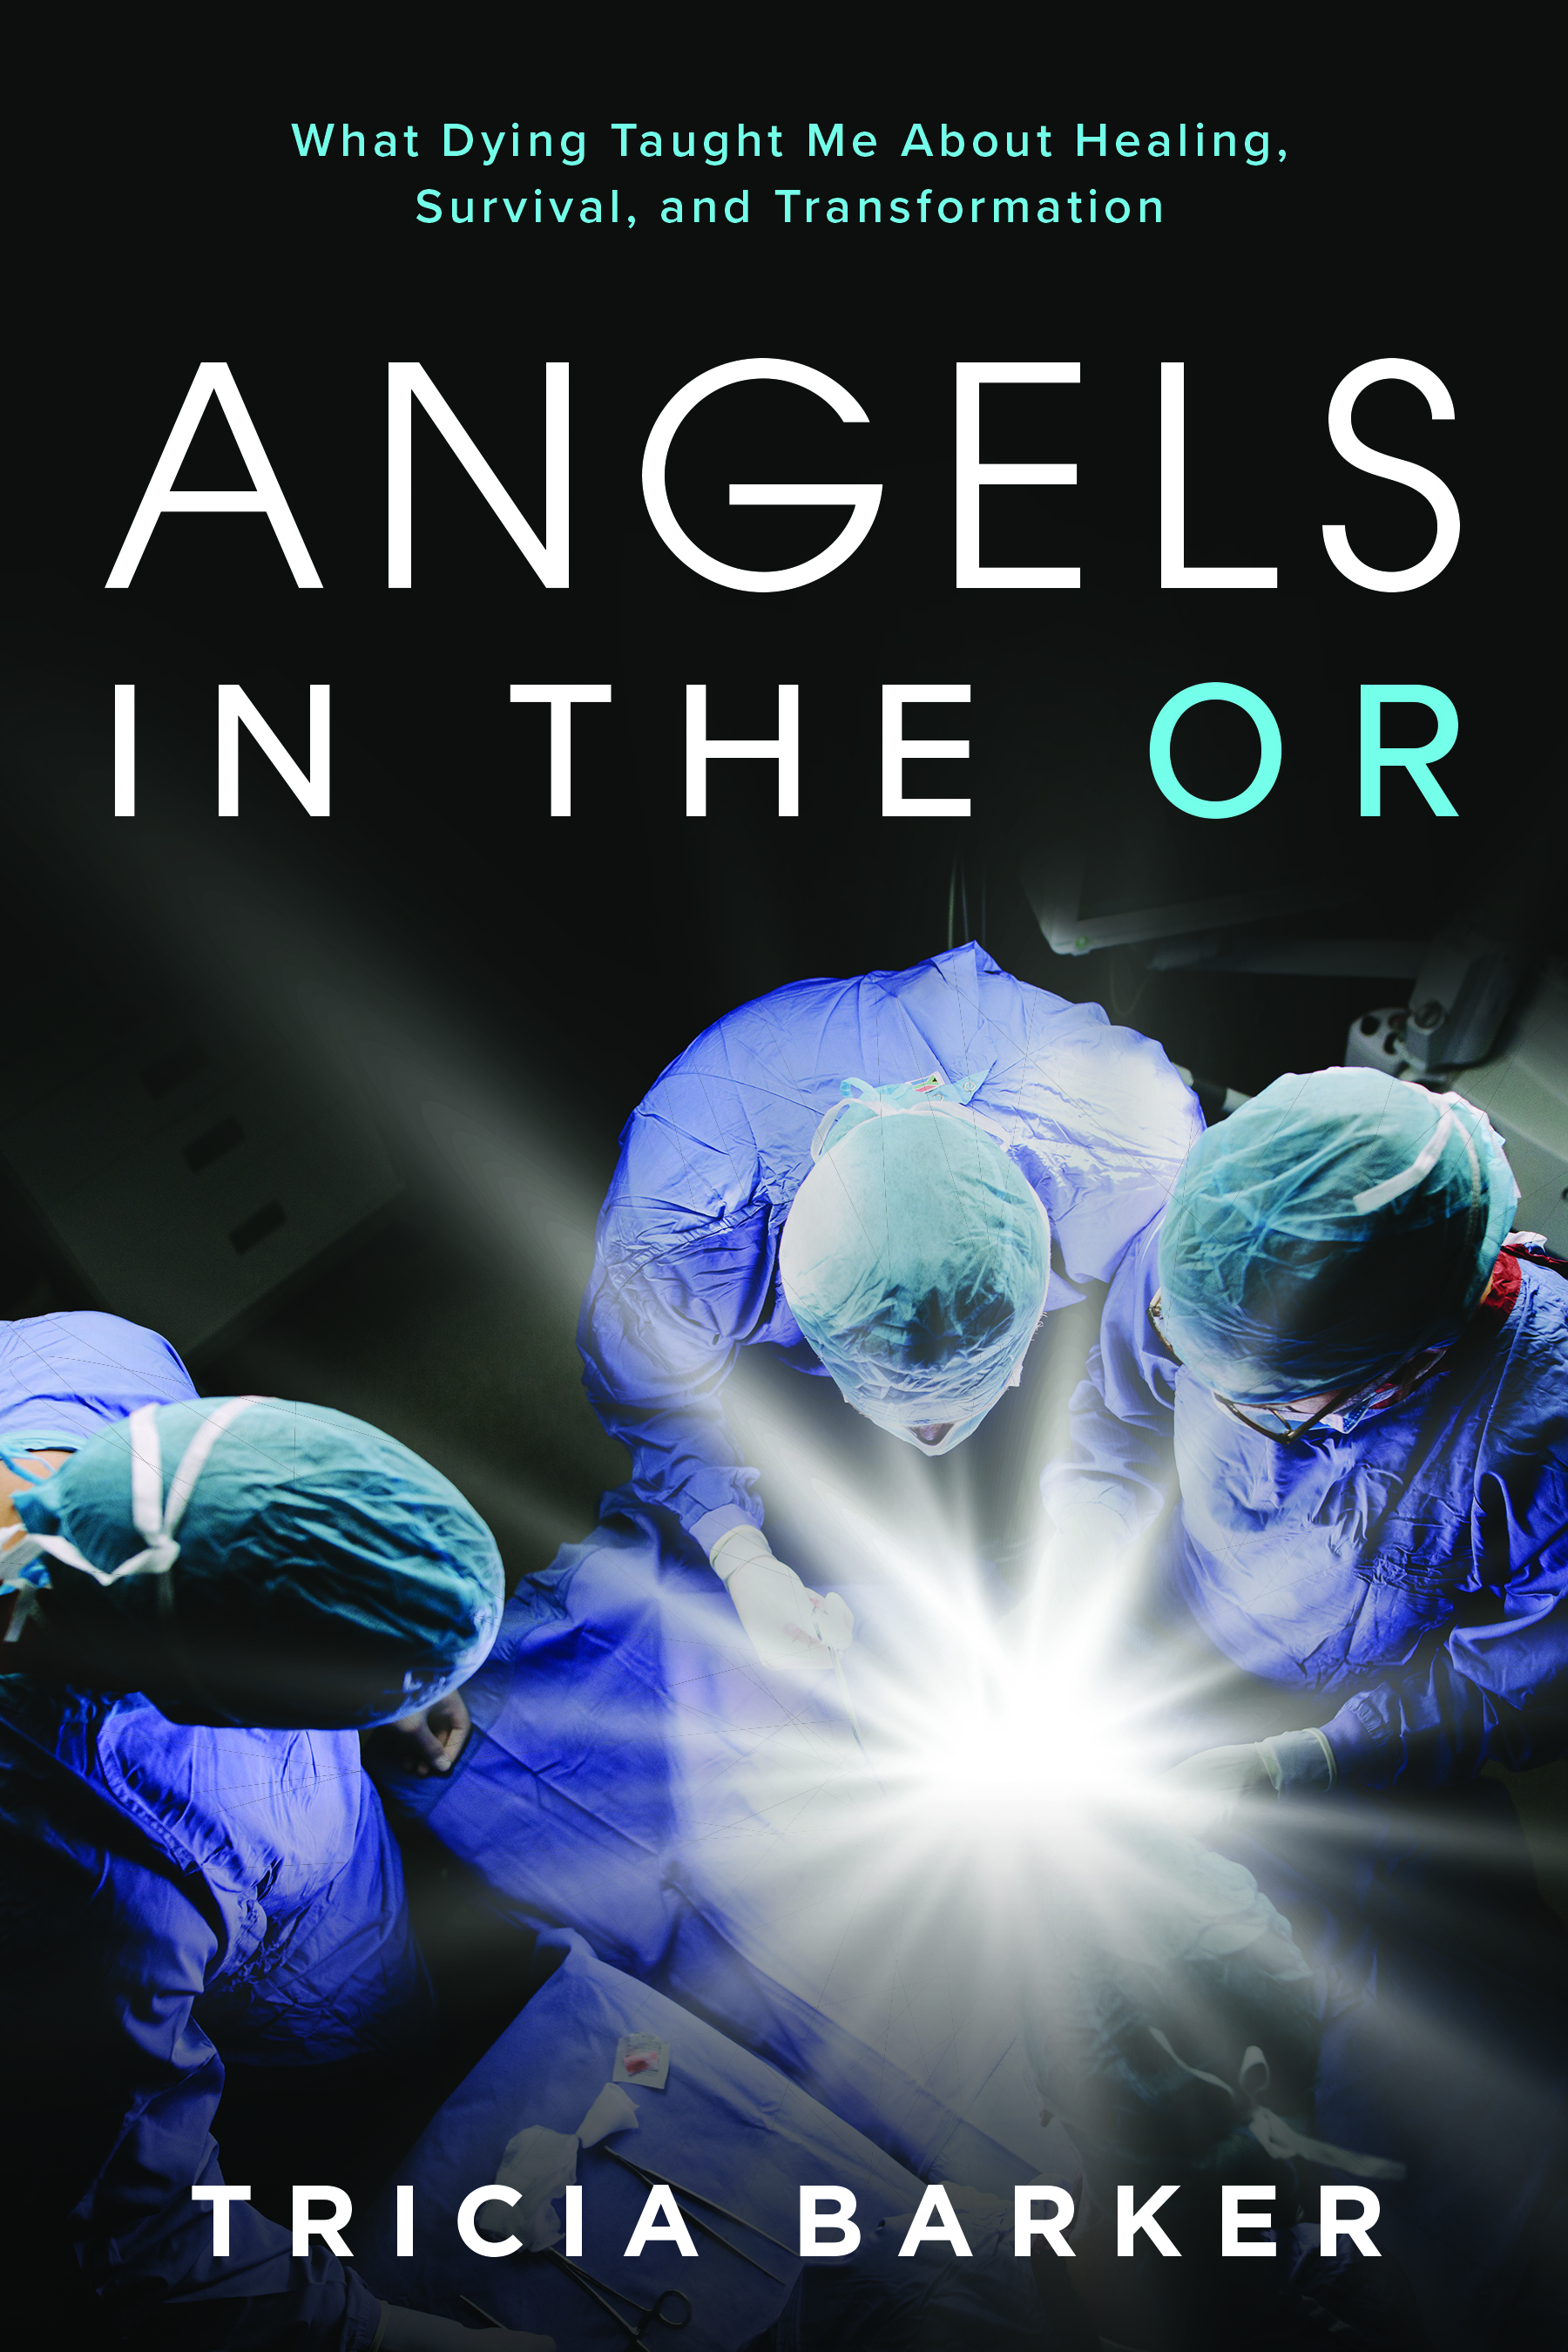 Angels-In-The-OR-Cover_v1